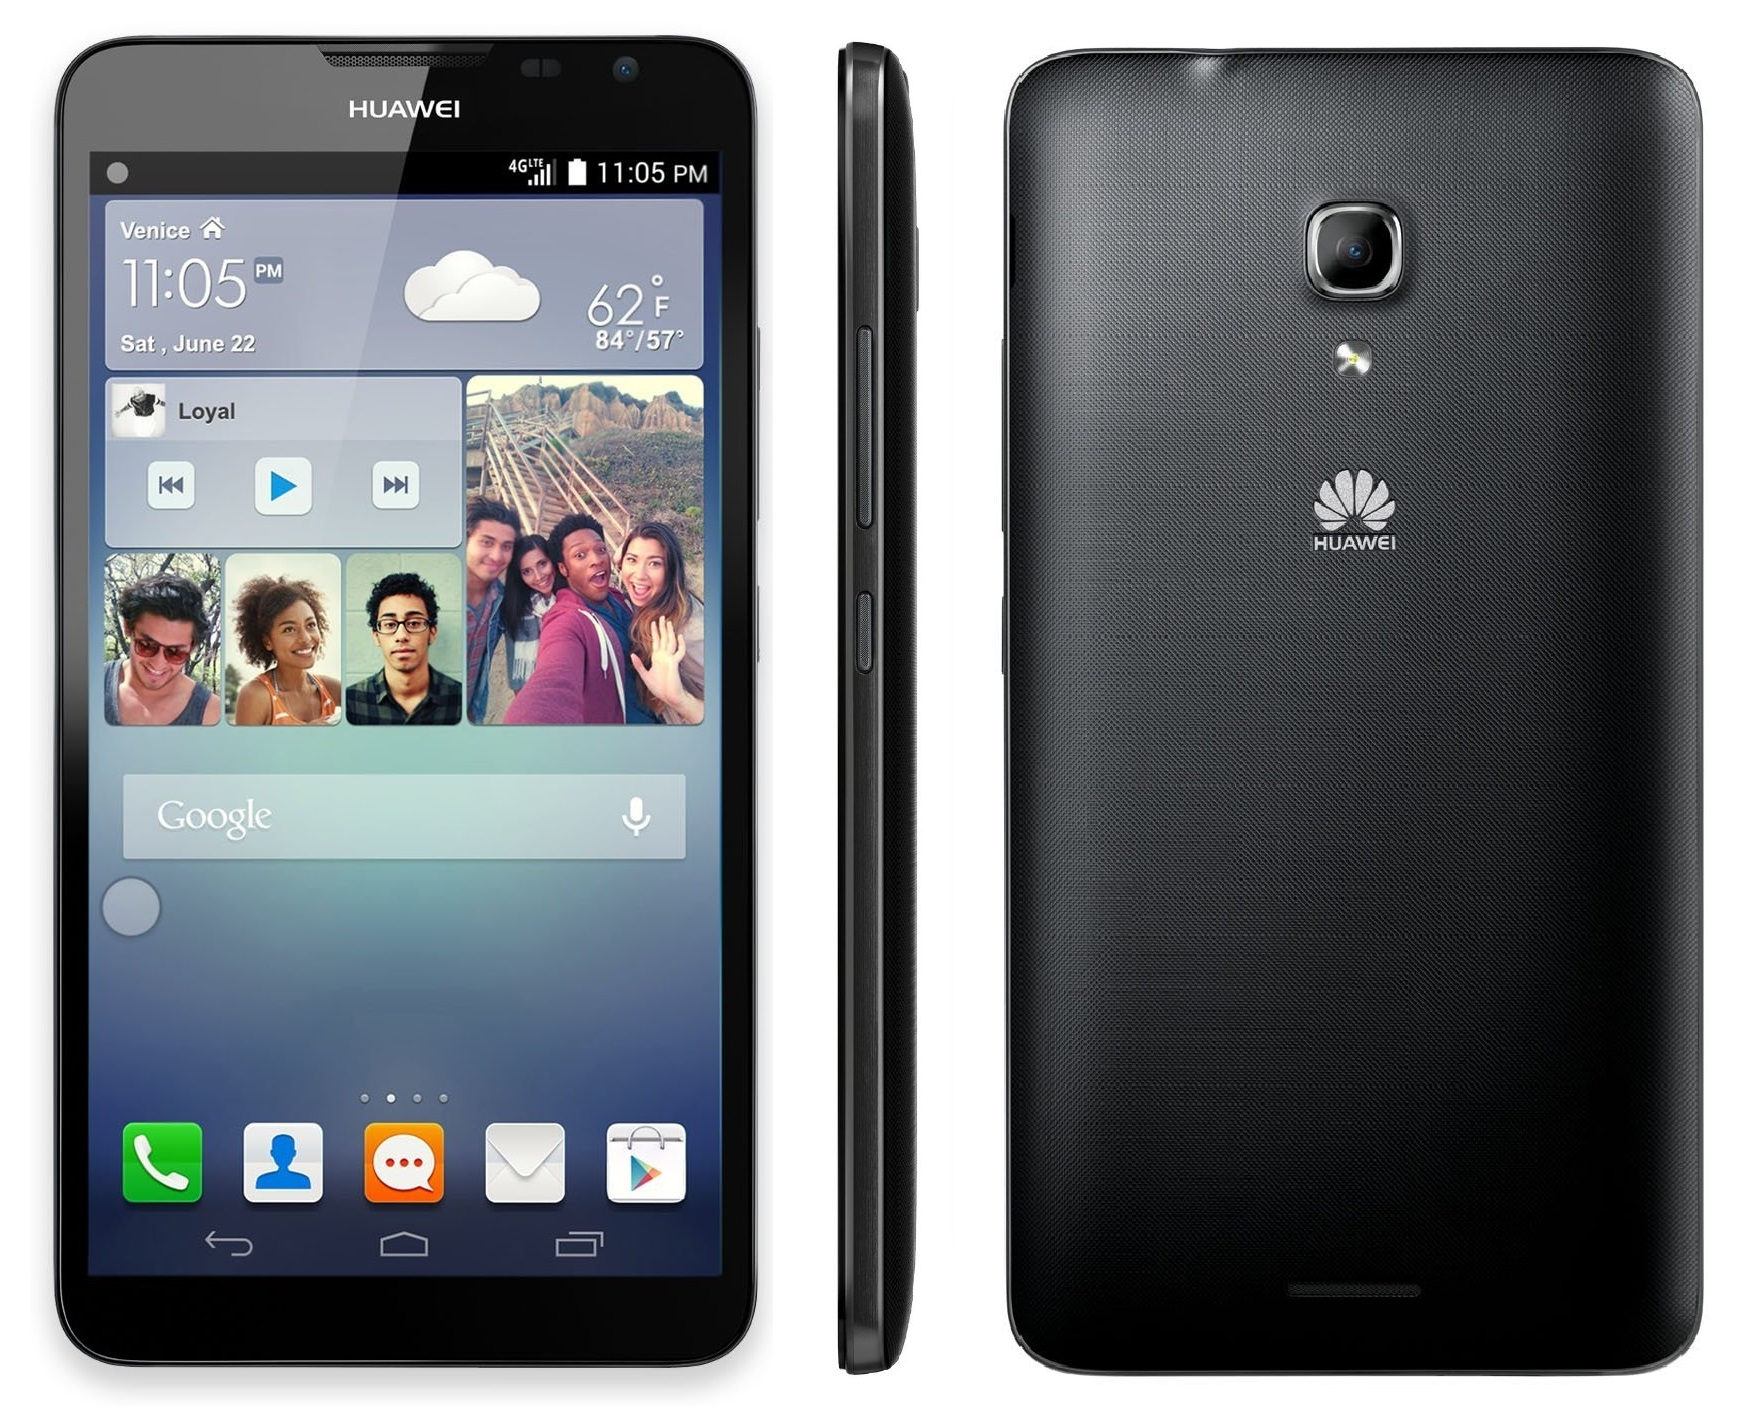 Huawei HUAWEI Ascend Mate 2 MT2-L03 16GB Unlocked GSM 4G LTE Android Phone - Black